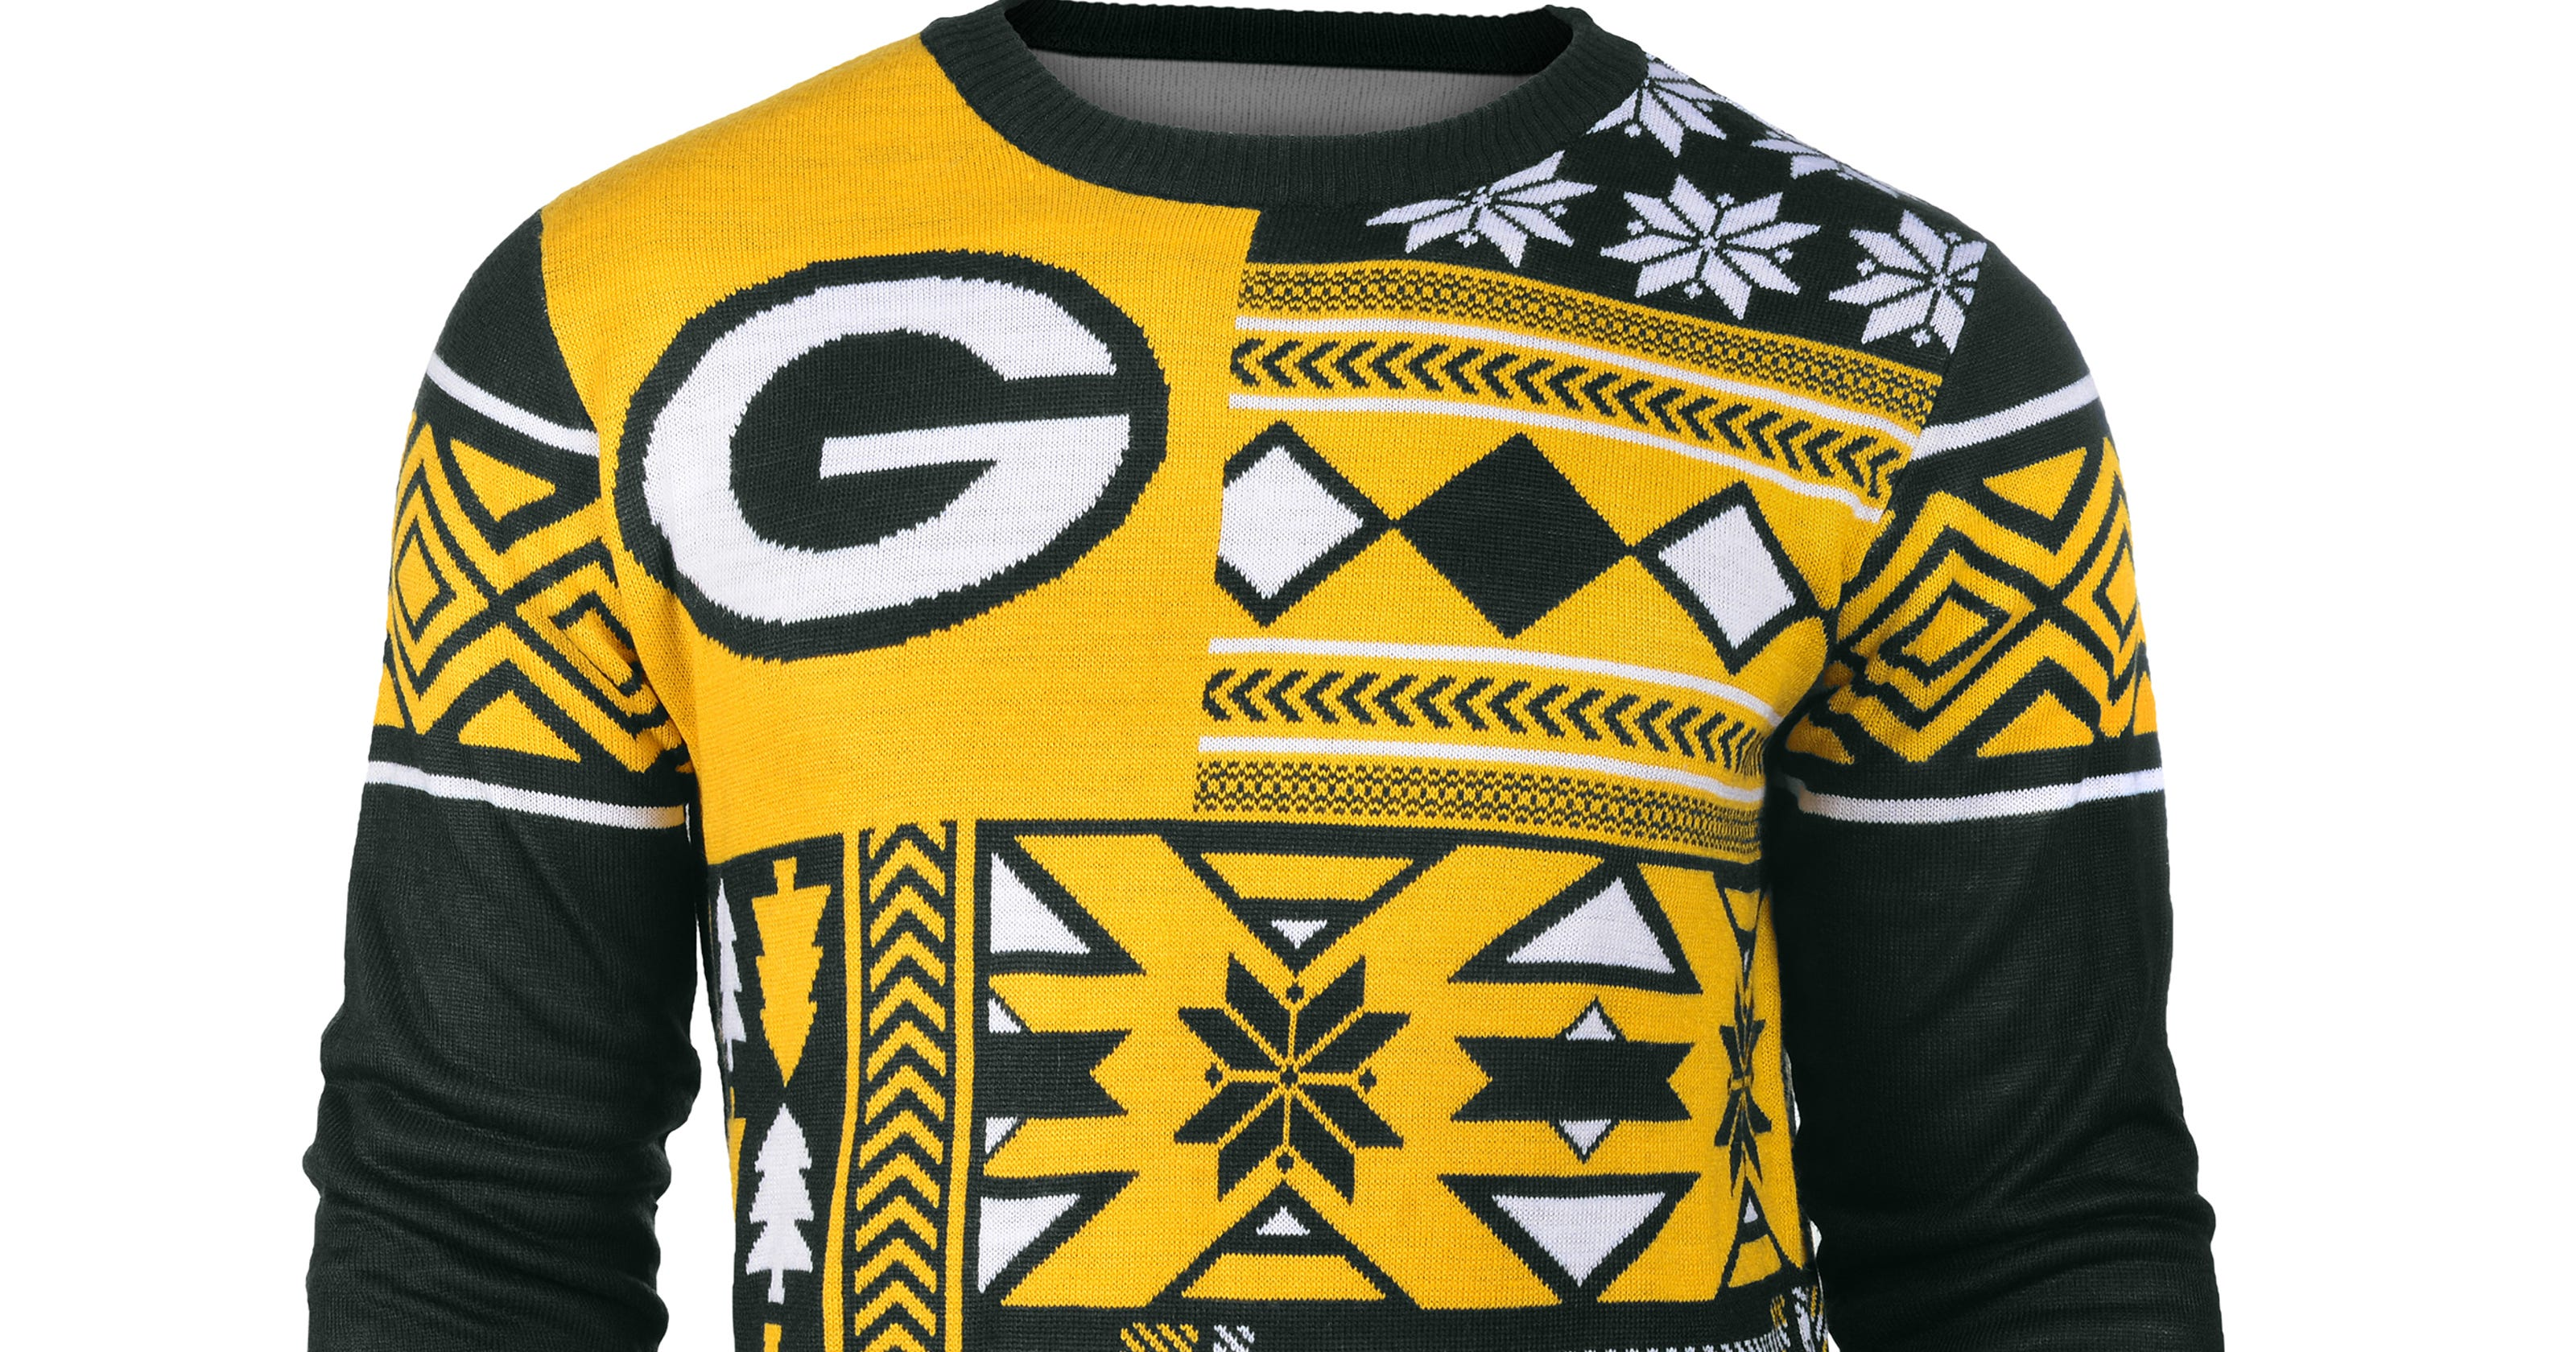 43b14c96712 Now that s an ugly Packers sweater